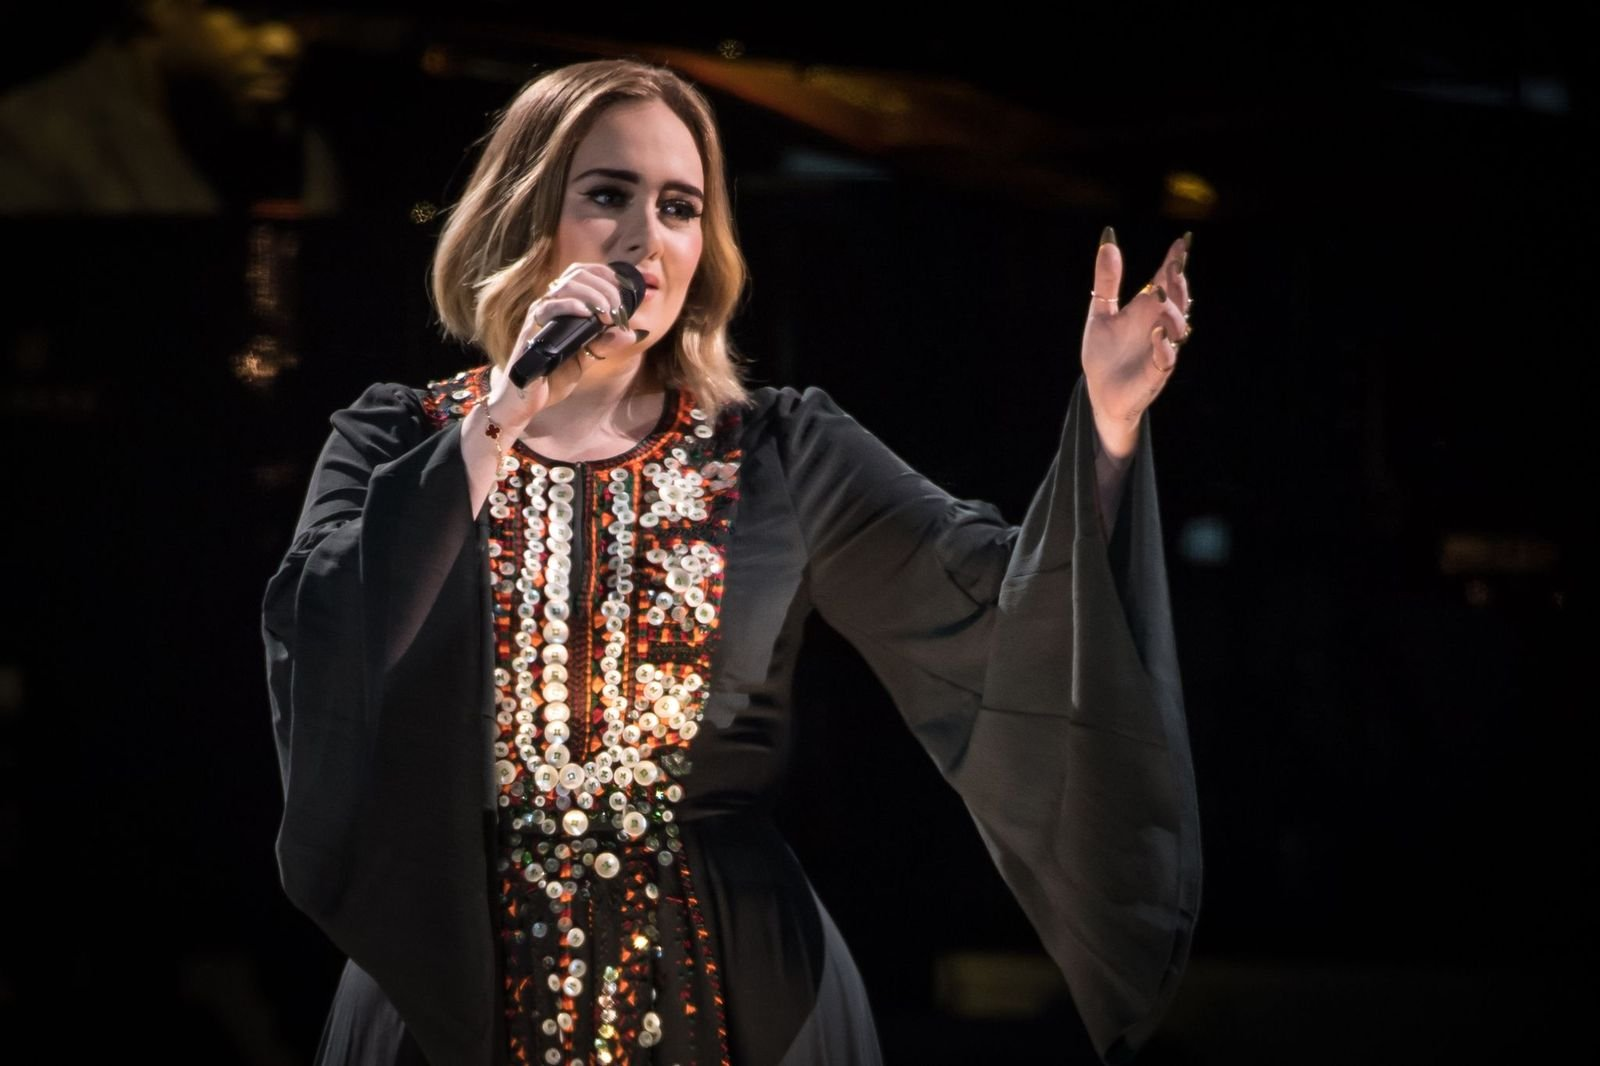 Adele performed on The Pyramid Stage on day 2 of the Glastonbury Festival at Worthy Farm, Pilton on June 25, 2016 in Glastonbury, England | Photo: Getty Images